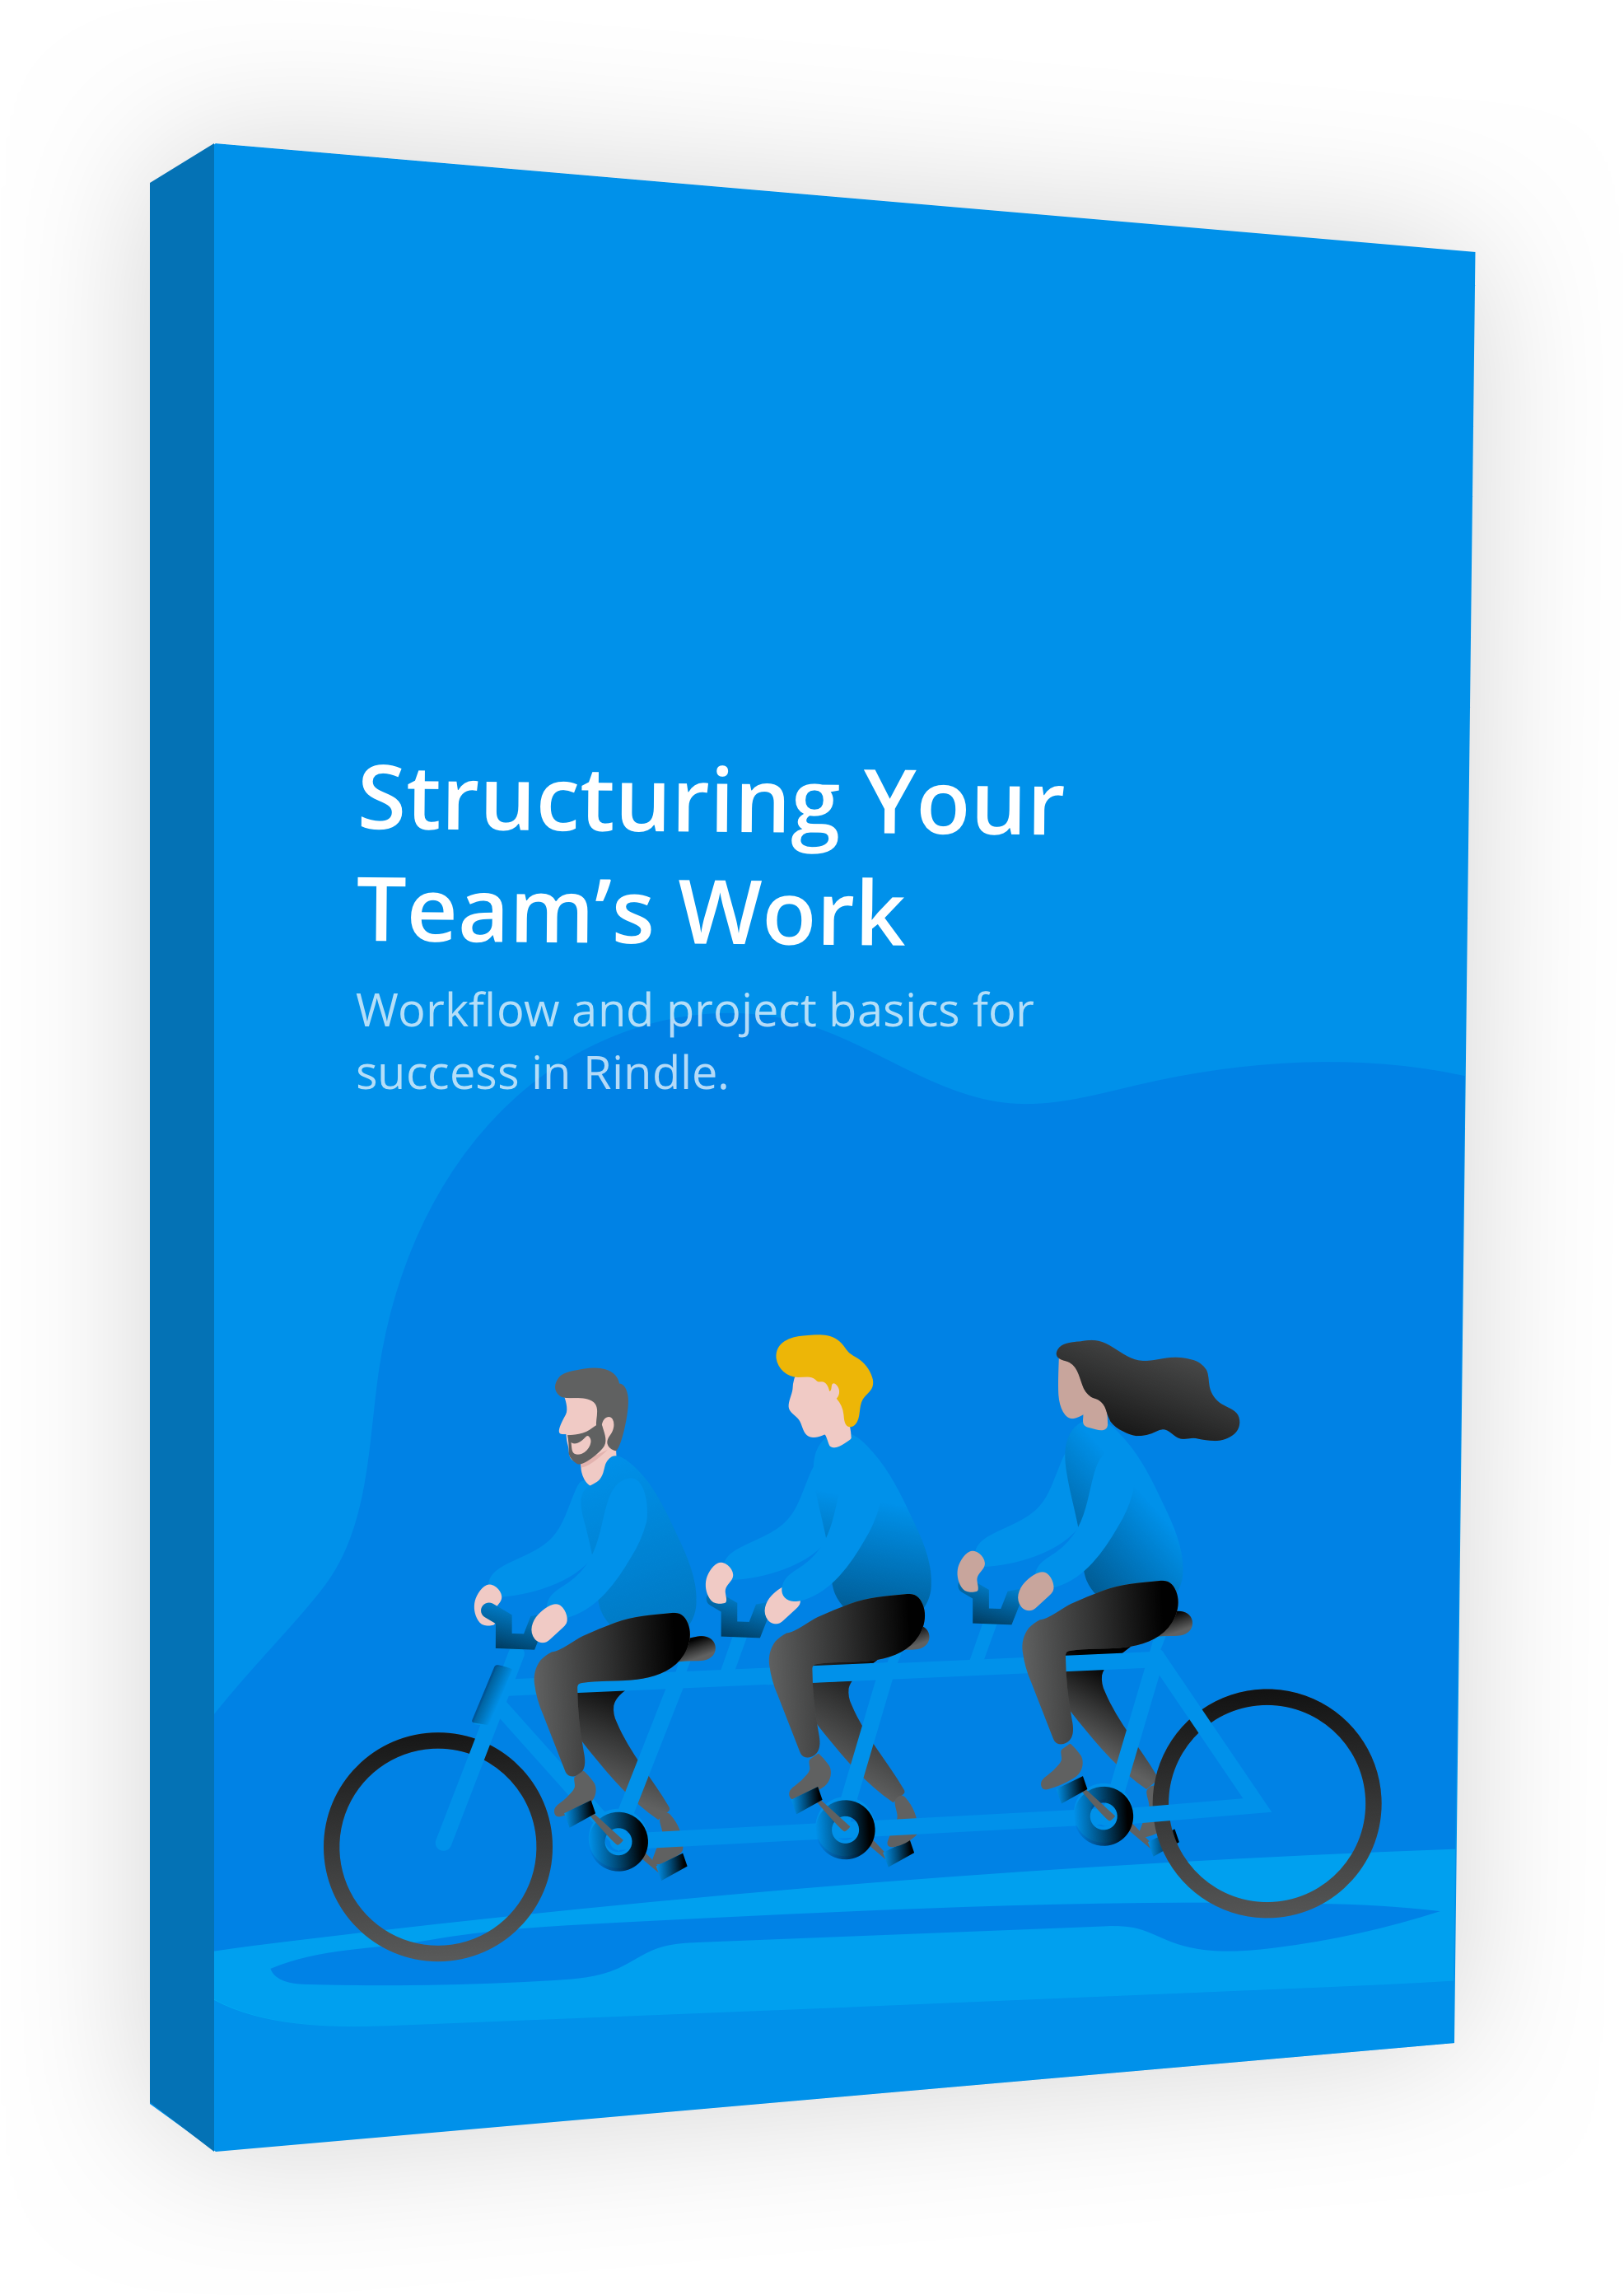 Structuring Your Team's Work